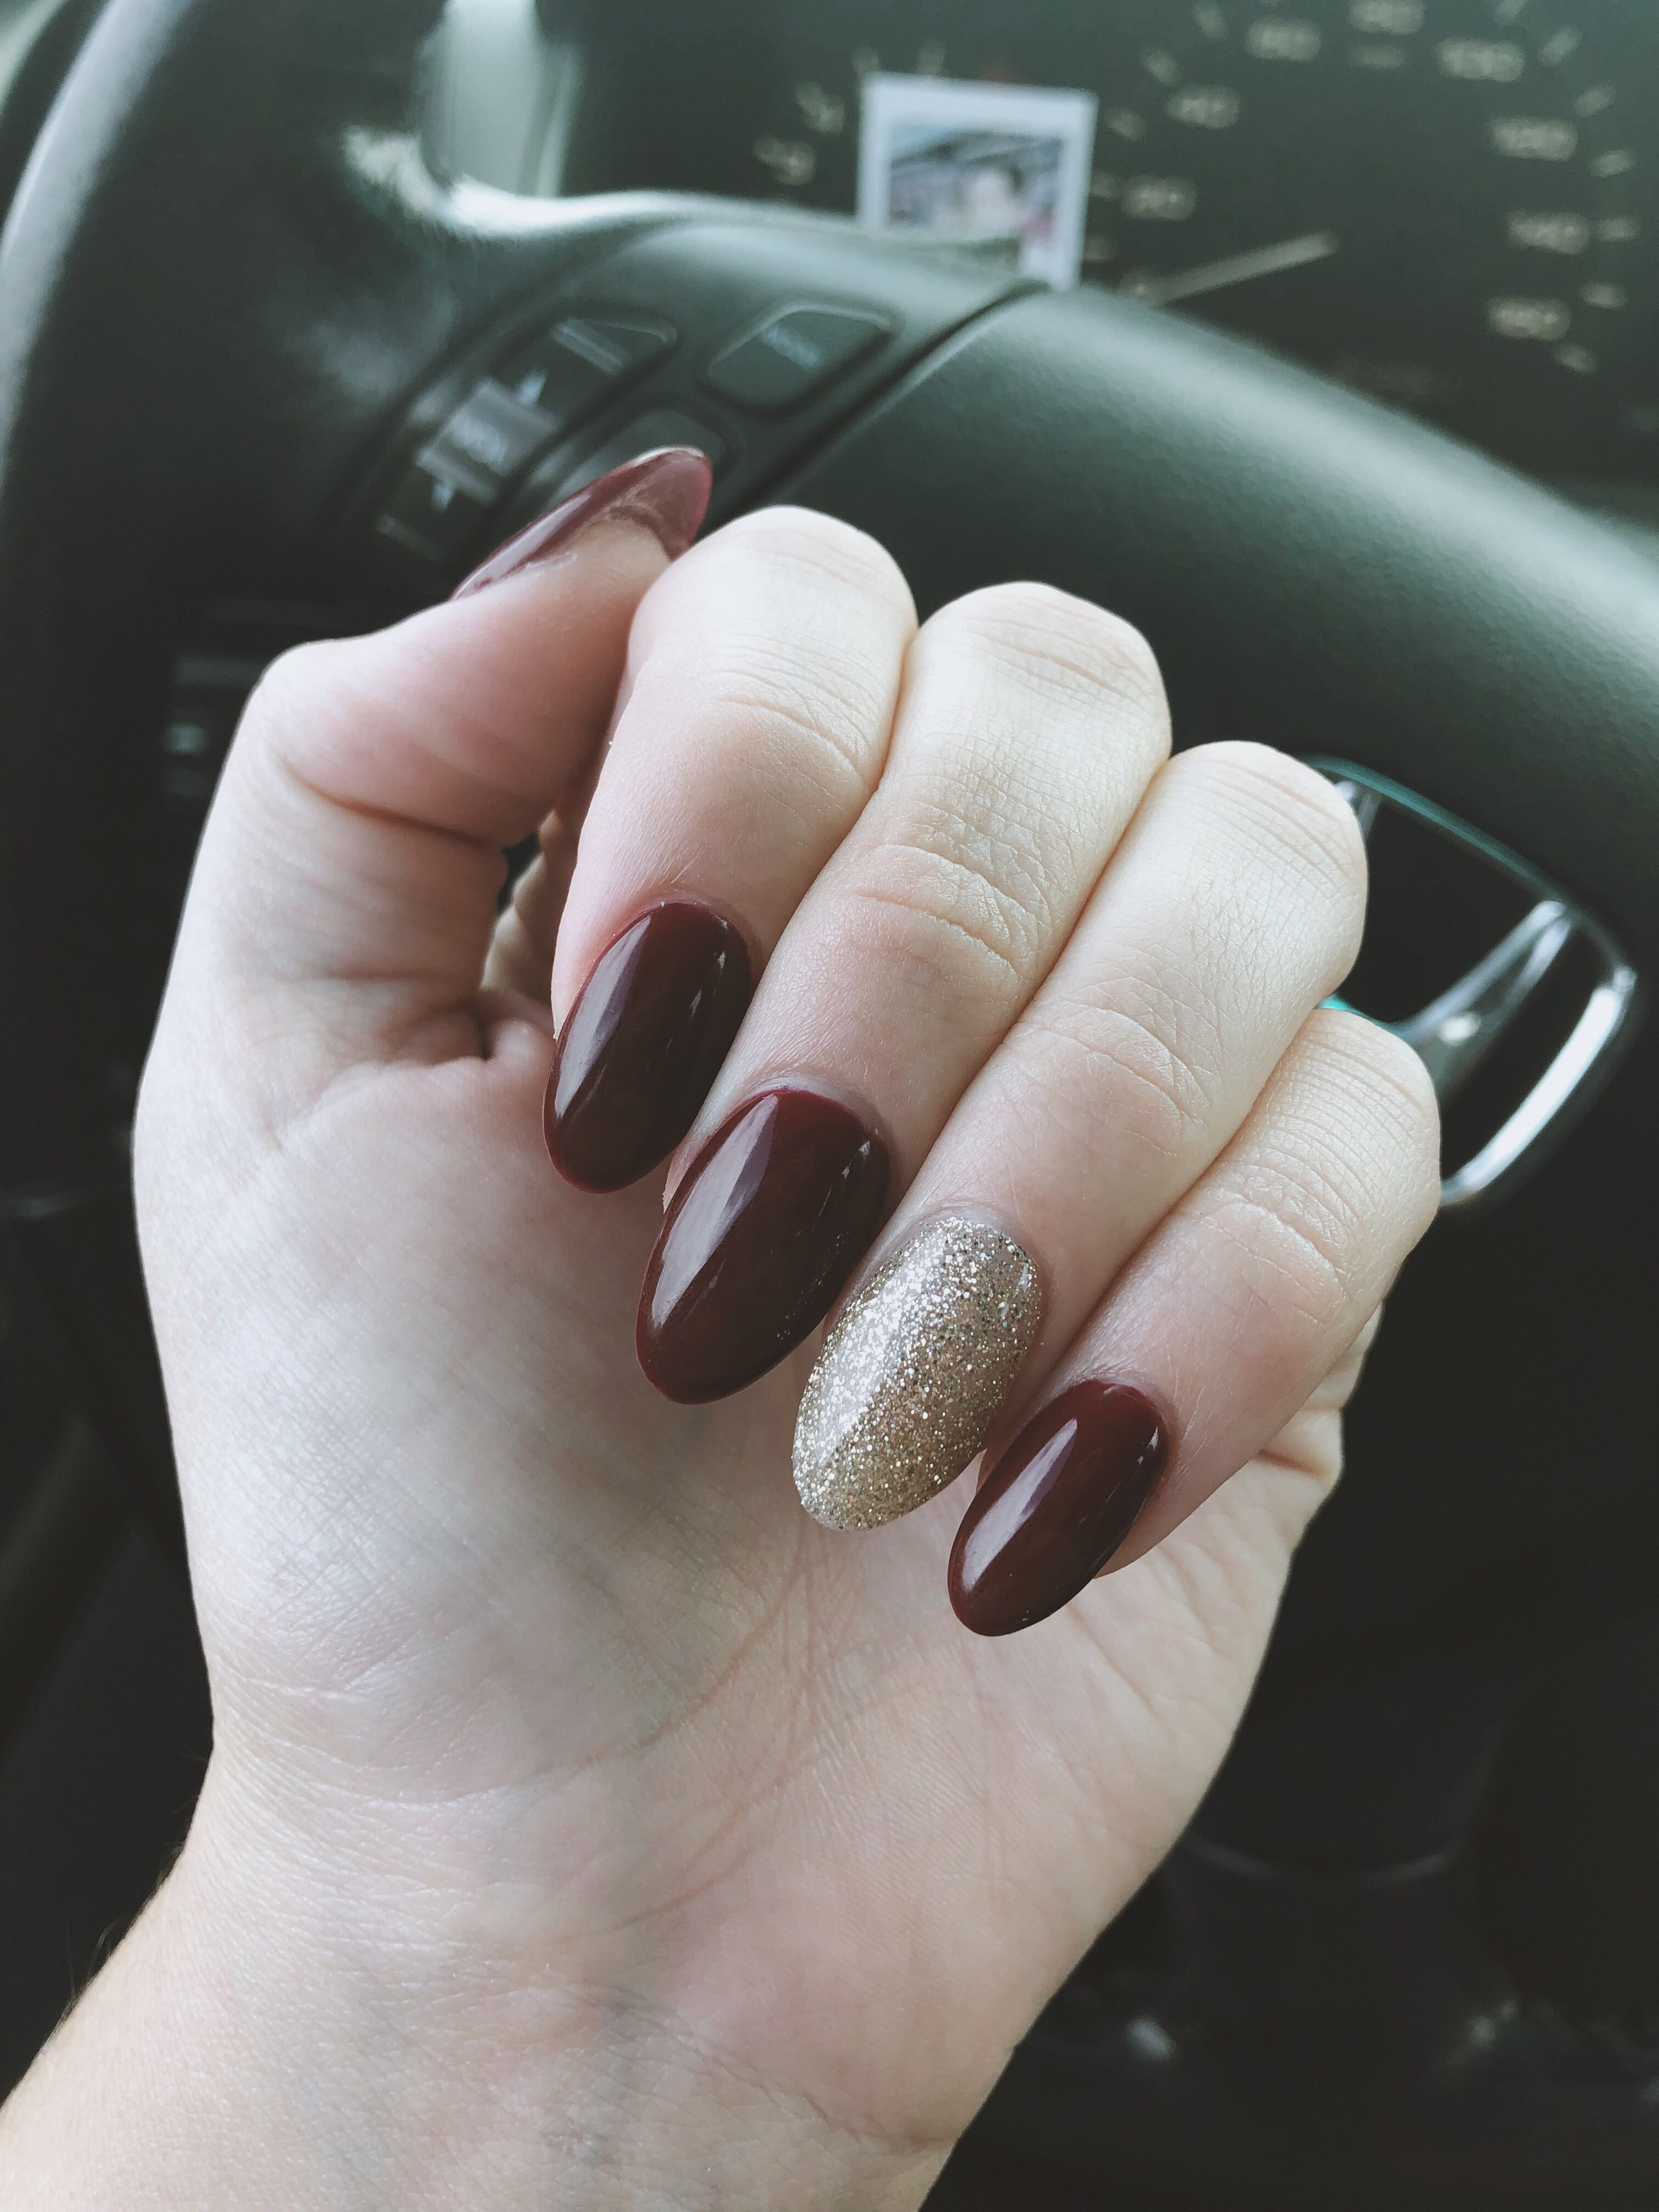 Pin by LaurenJensen on Nail colors | Nails, Mom style